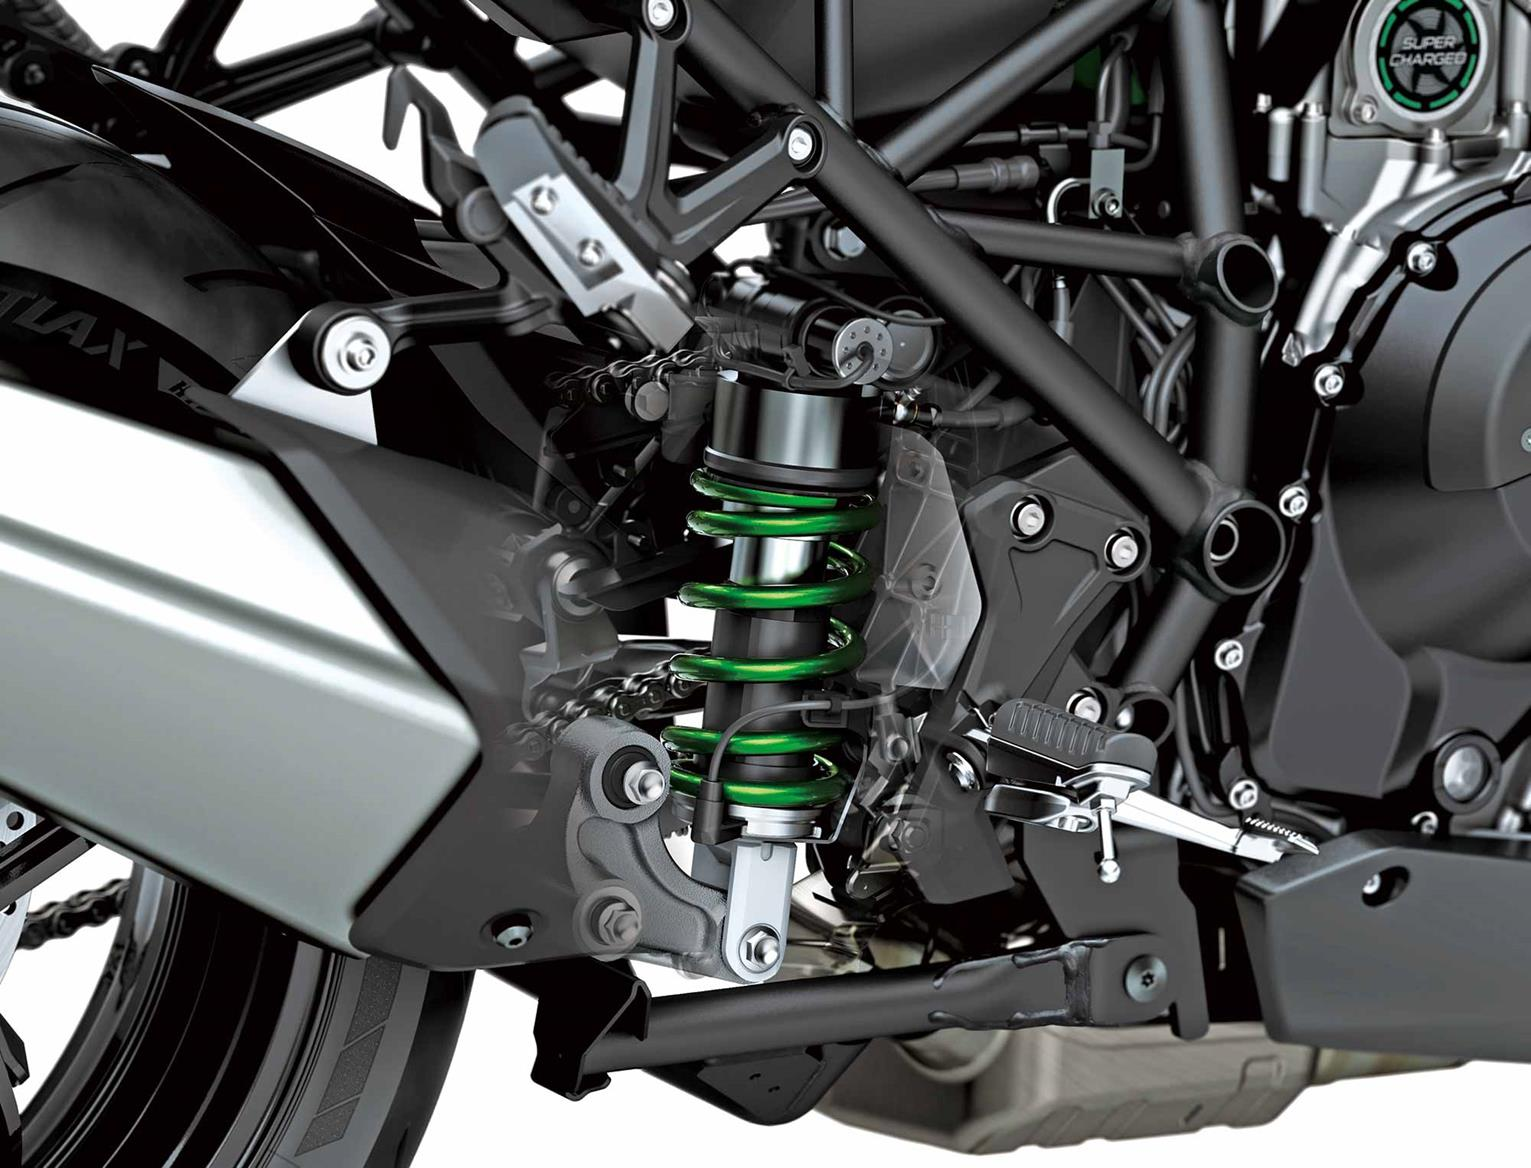 The rear shock on the Kawasaki Versys 1000